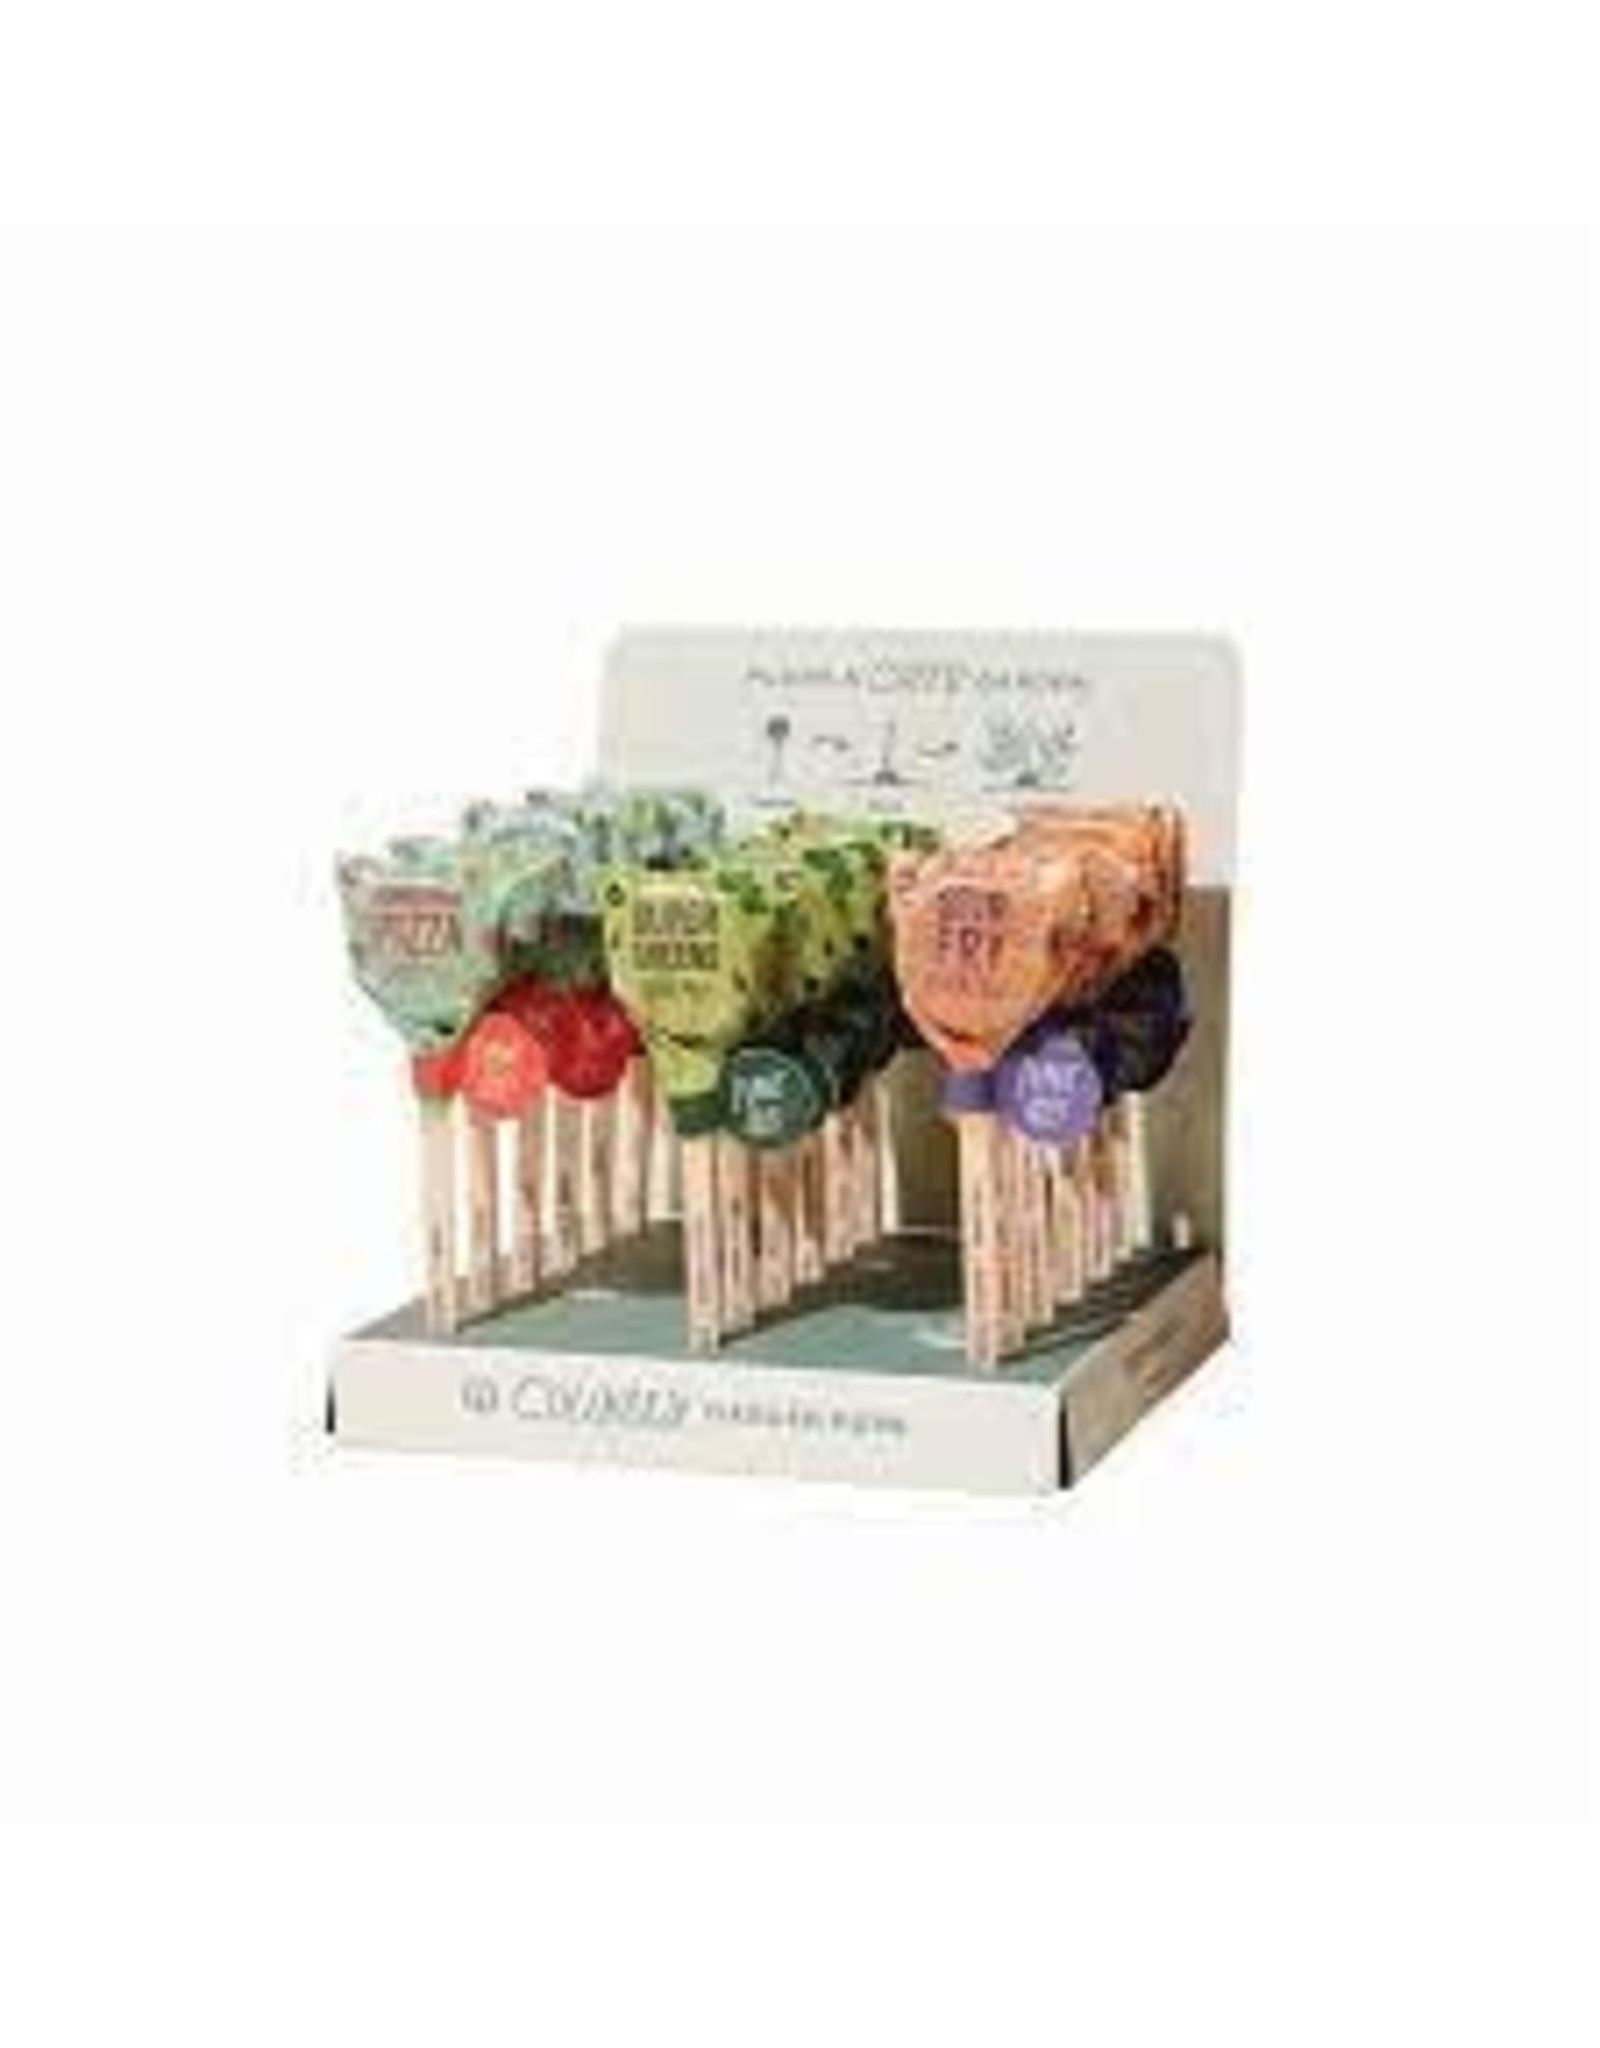 Modern Sprout MS- Culinary Seed pops